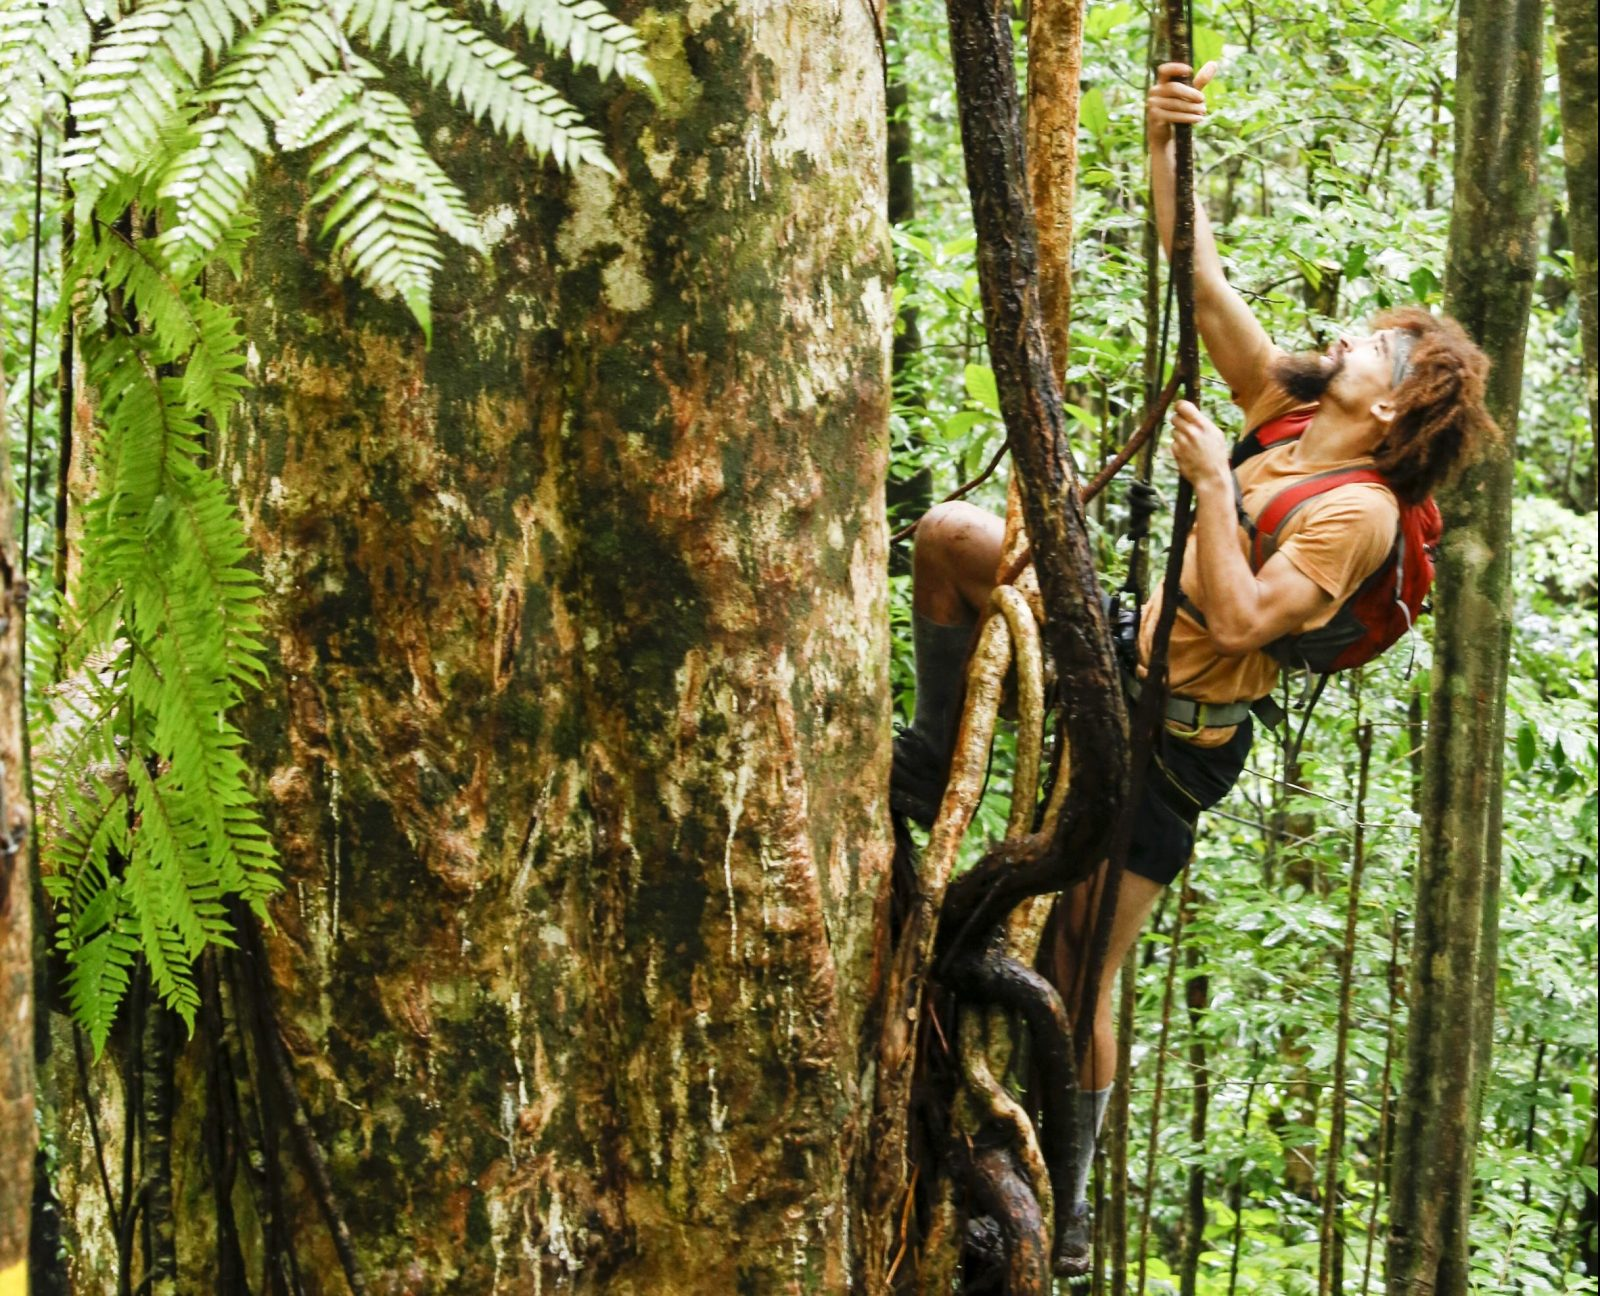 Jeremy Guarino climbing the large tree on Discovery Channel's 'American Tarzan.'